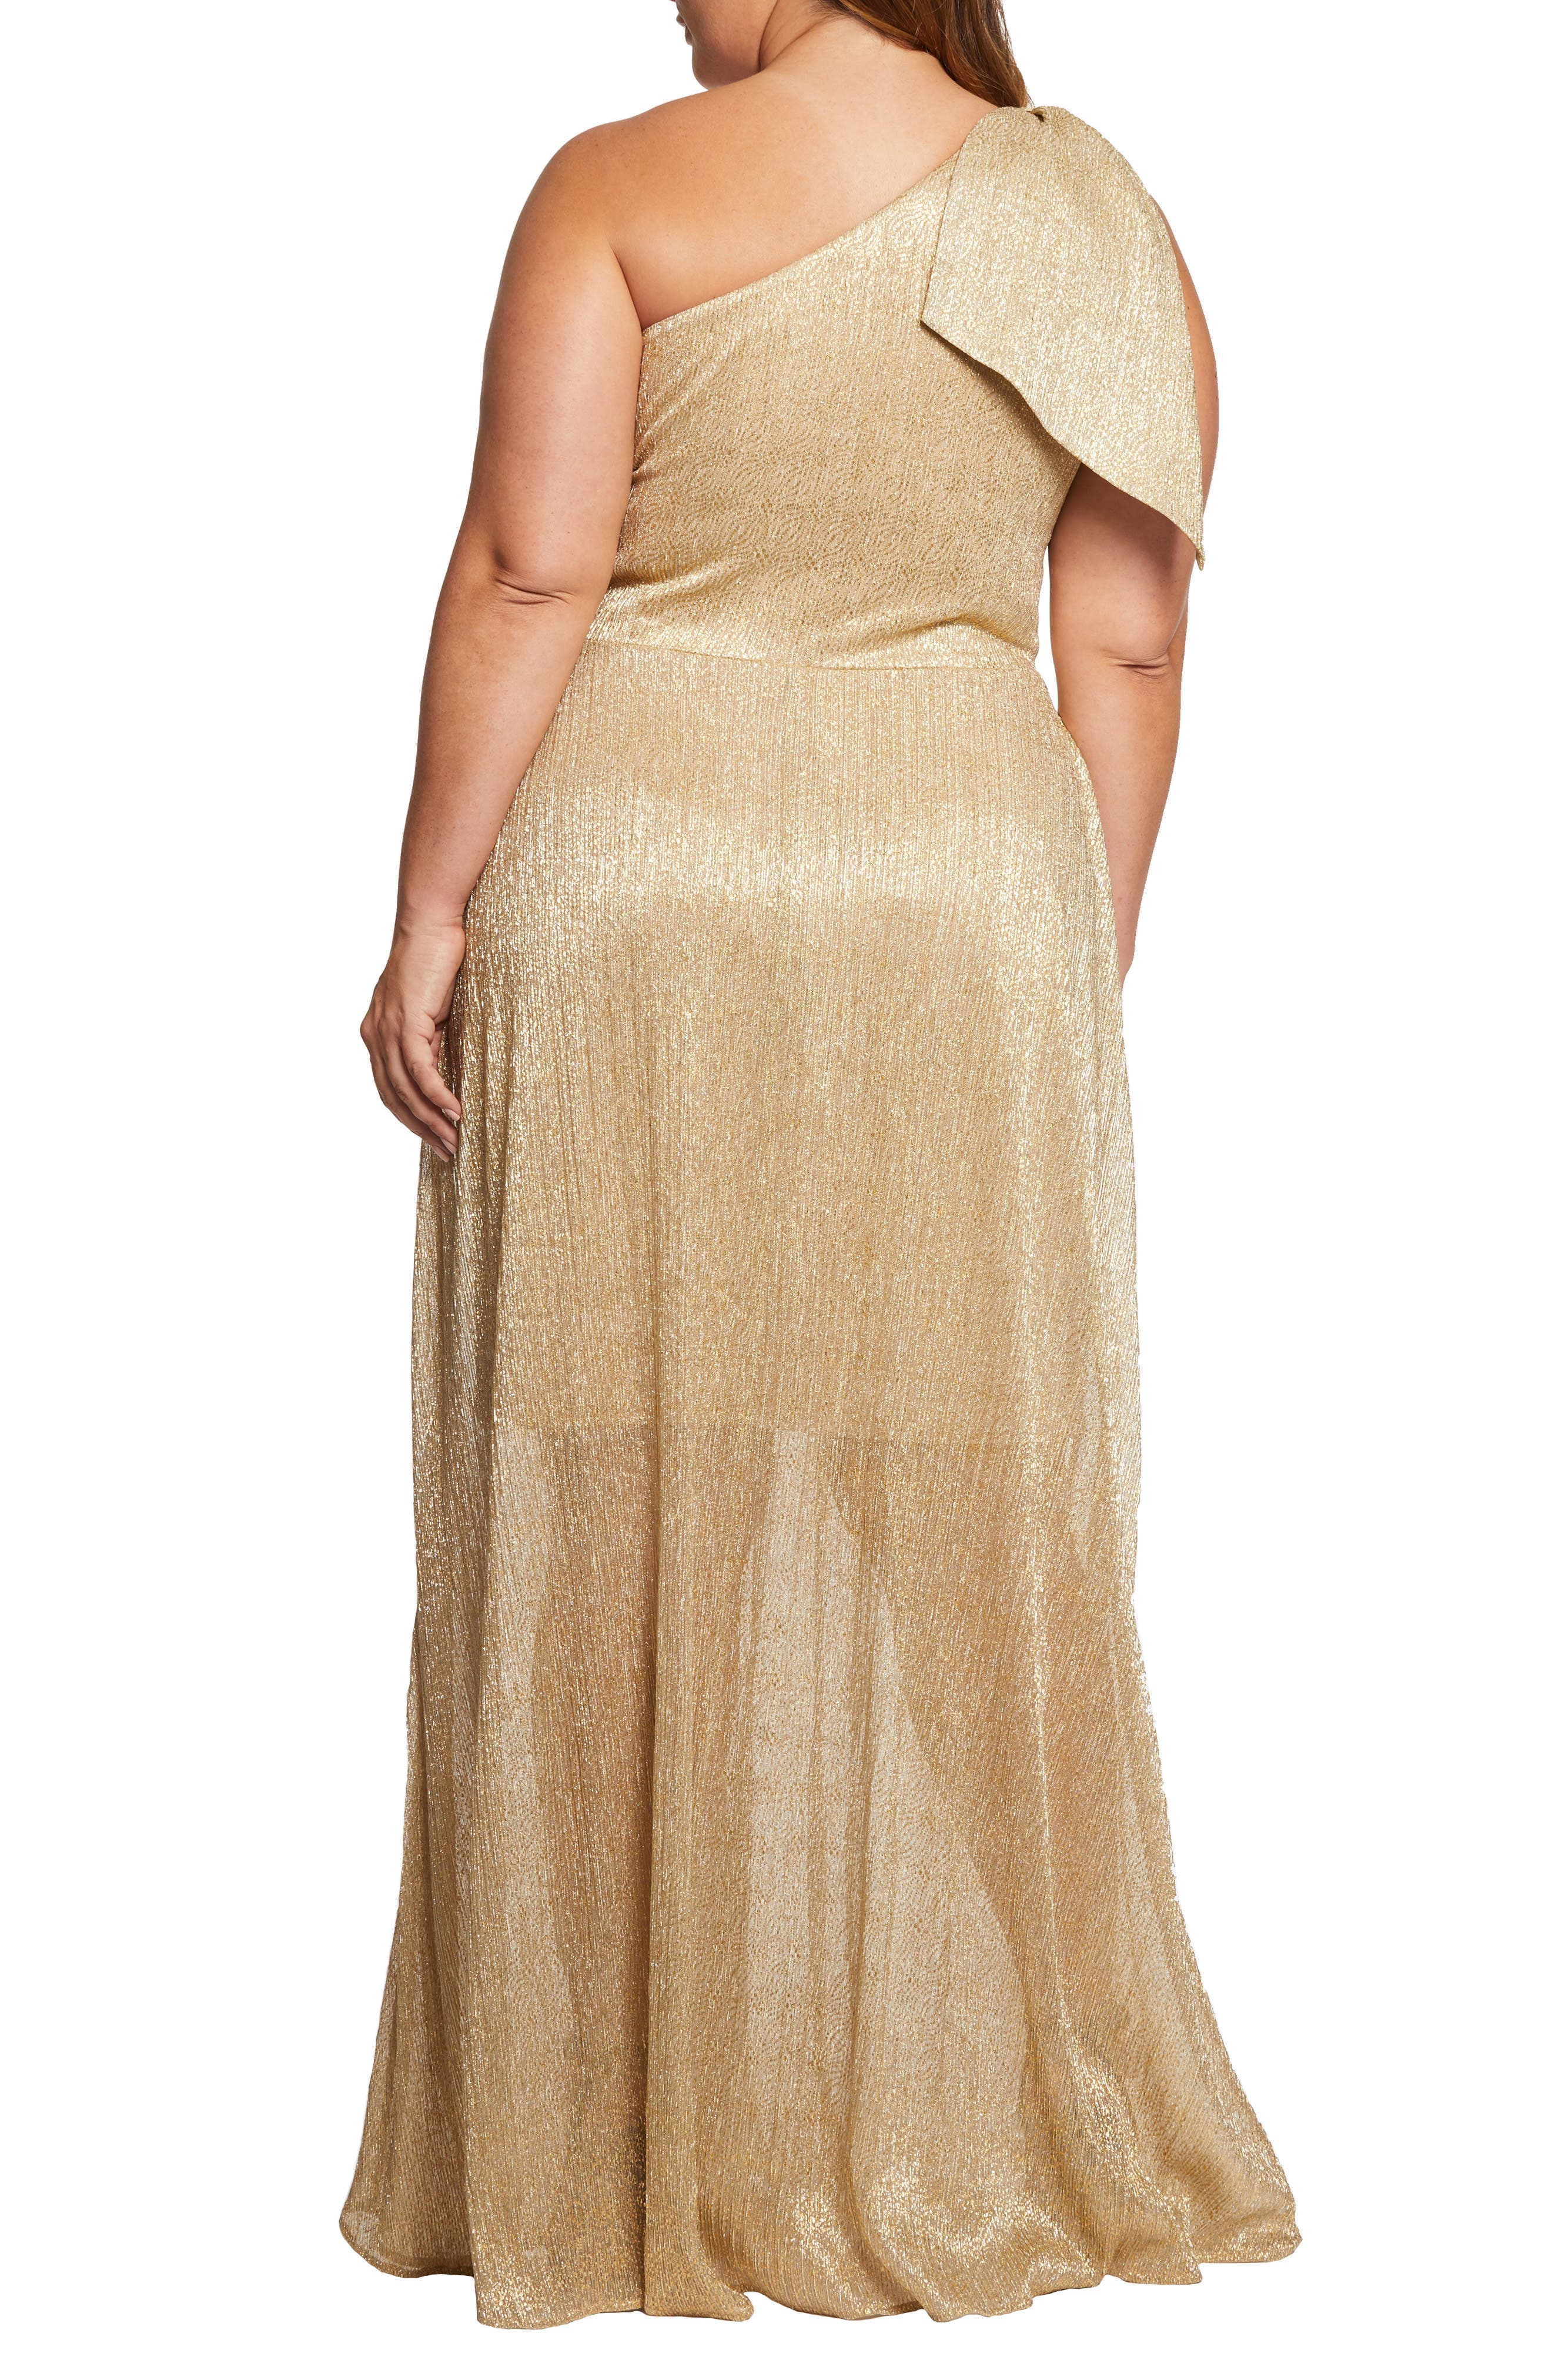 DRESS THE POPULATION, Savannah One-Shoulder Gown, Alternate thumbnail 2, color, GOLD